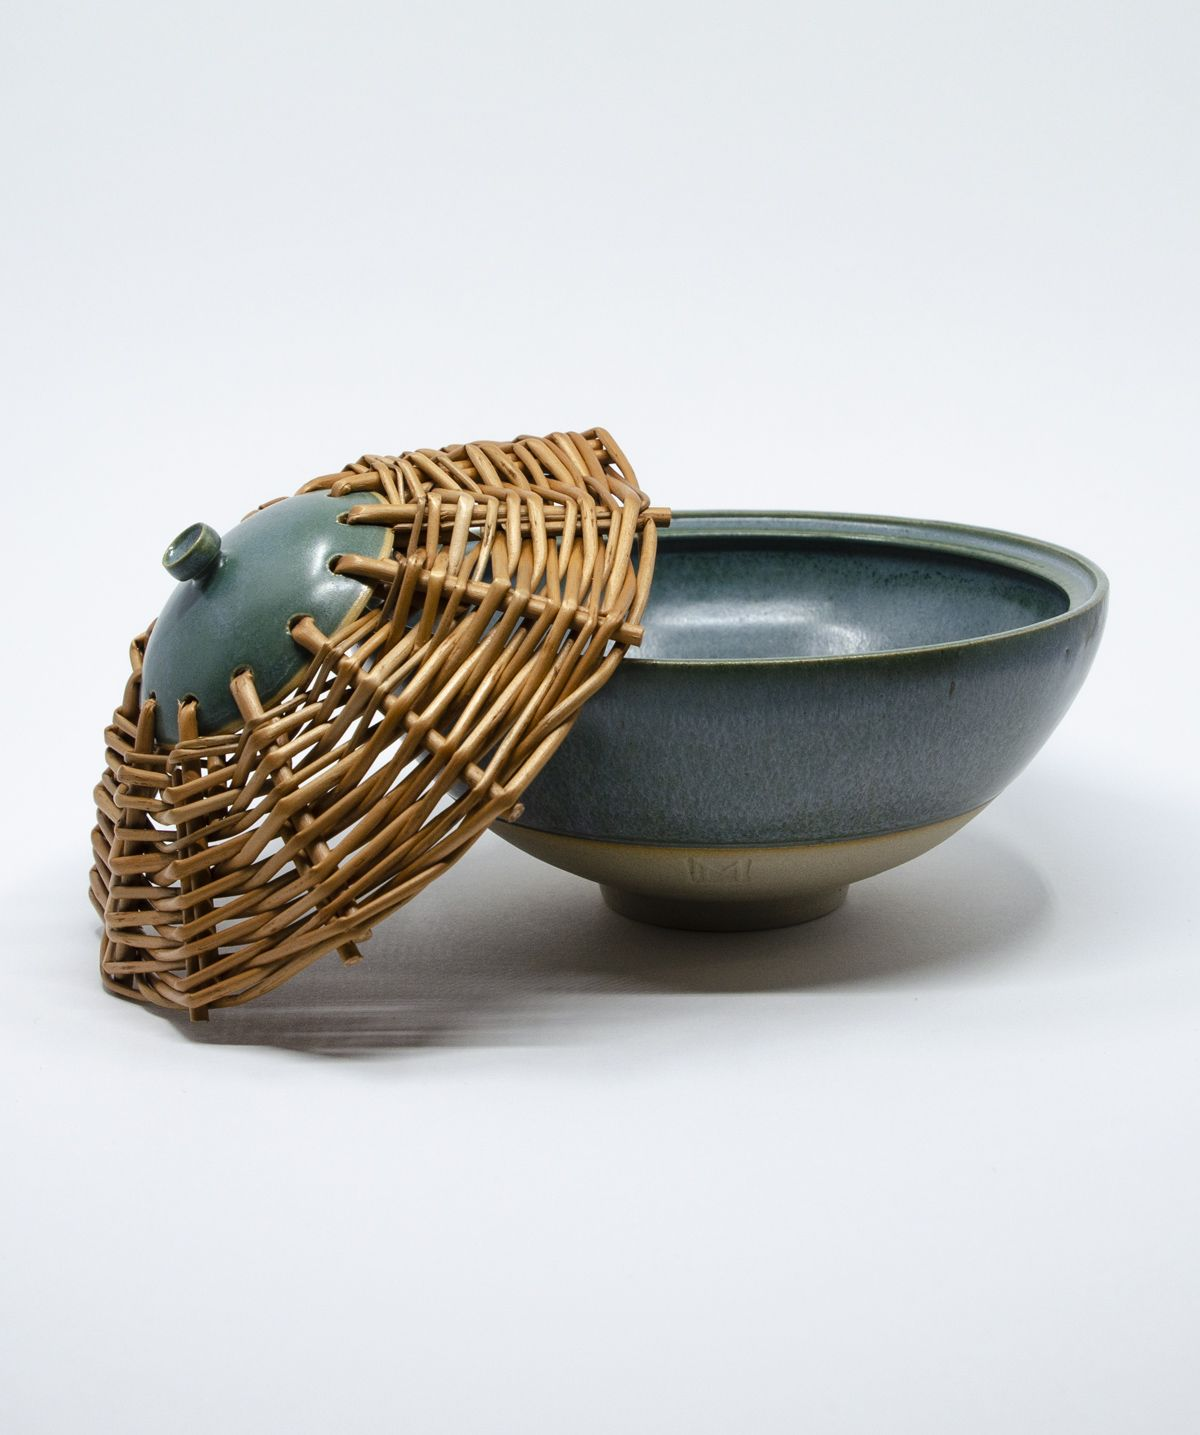 The unique bowl is glazed outside and inside with a green turquoise glaze, a stone ware bottom. The lid of the bowl is woven from willow. Pottery handmade art - Gosha Ceramics by #gosha_ceramics // #ceramics #céramique #osier #osiervintage #pottery #poterie #clay #claylove #willowweaving #homedeco #willow #willowceramics #handmadeceramics #willowtree #rusticstyle #ilovepottery #bowl #rusticdecor #wheelthrown #wheelthrowing #籐 #funcionalpottery